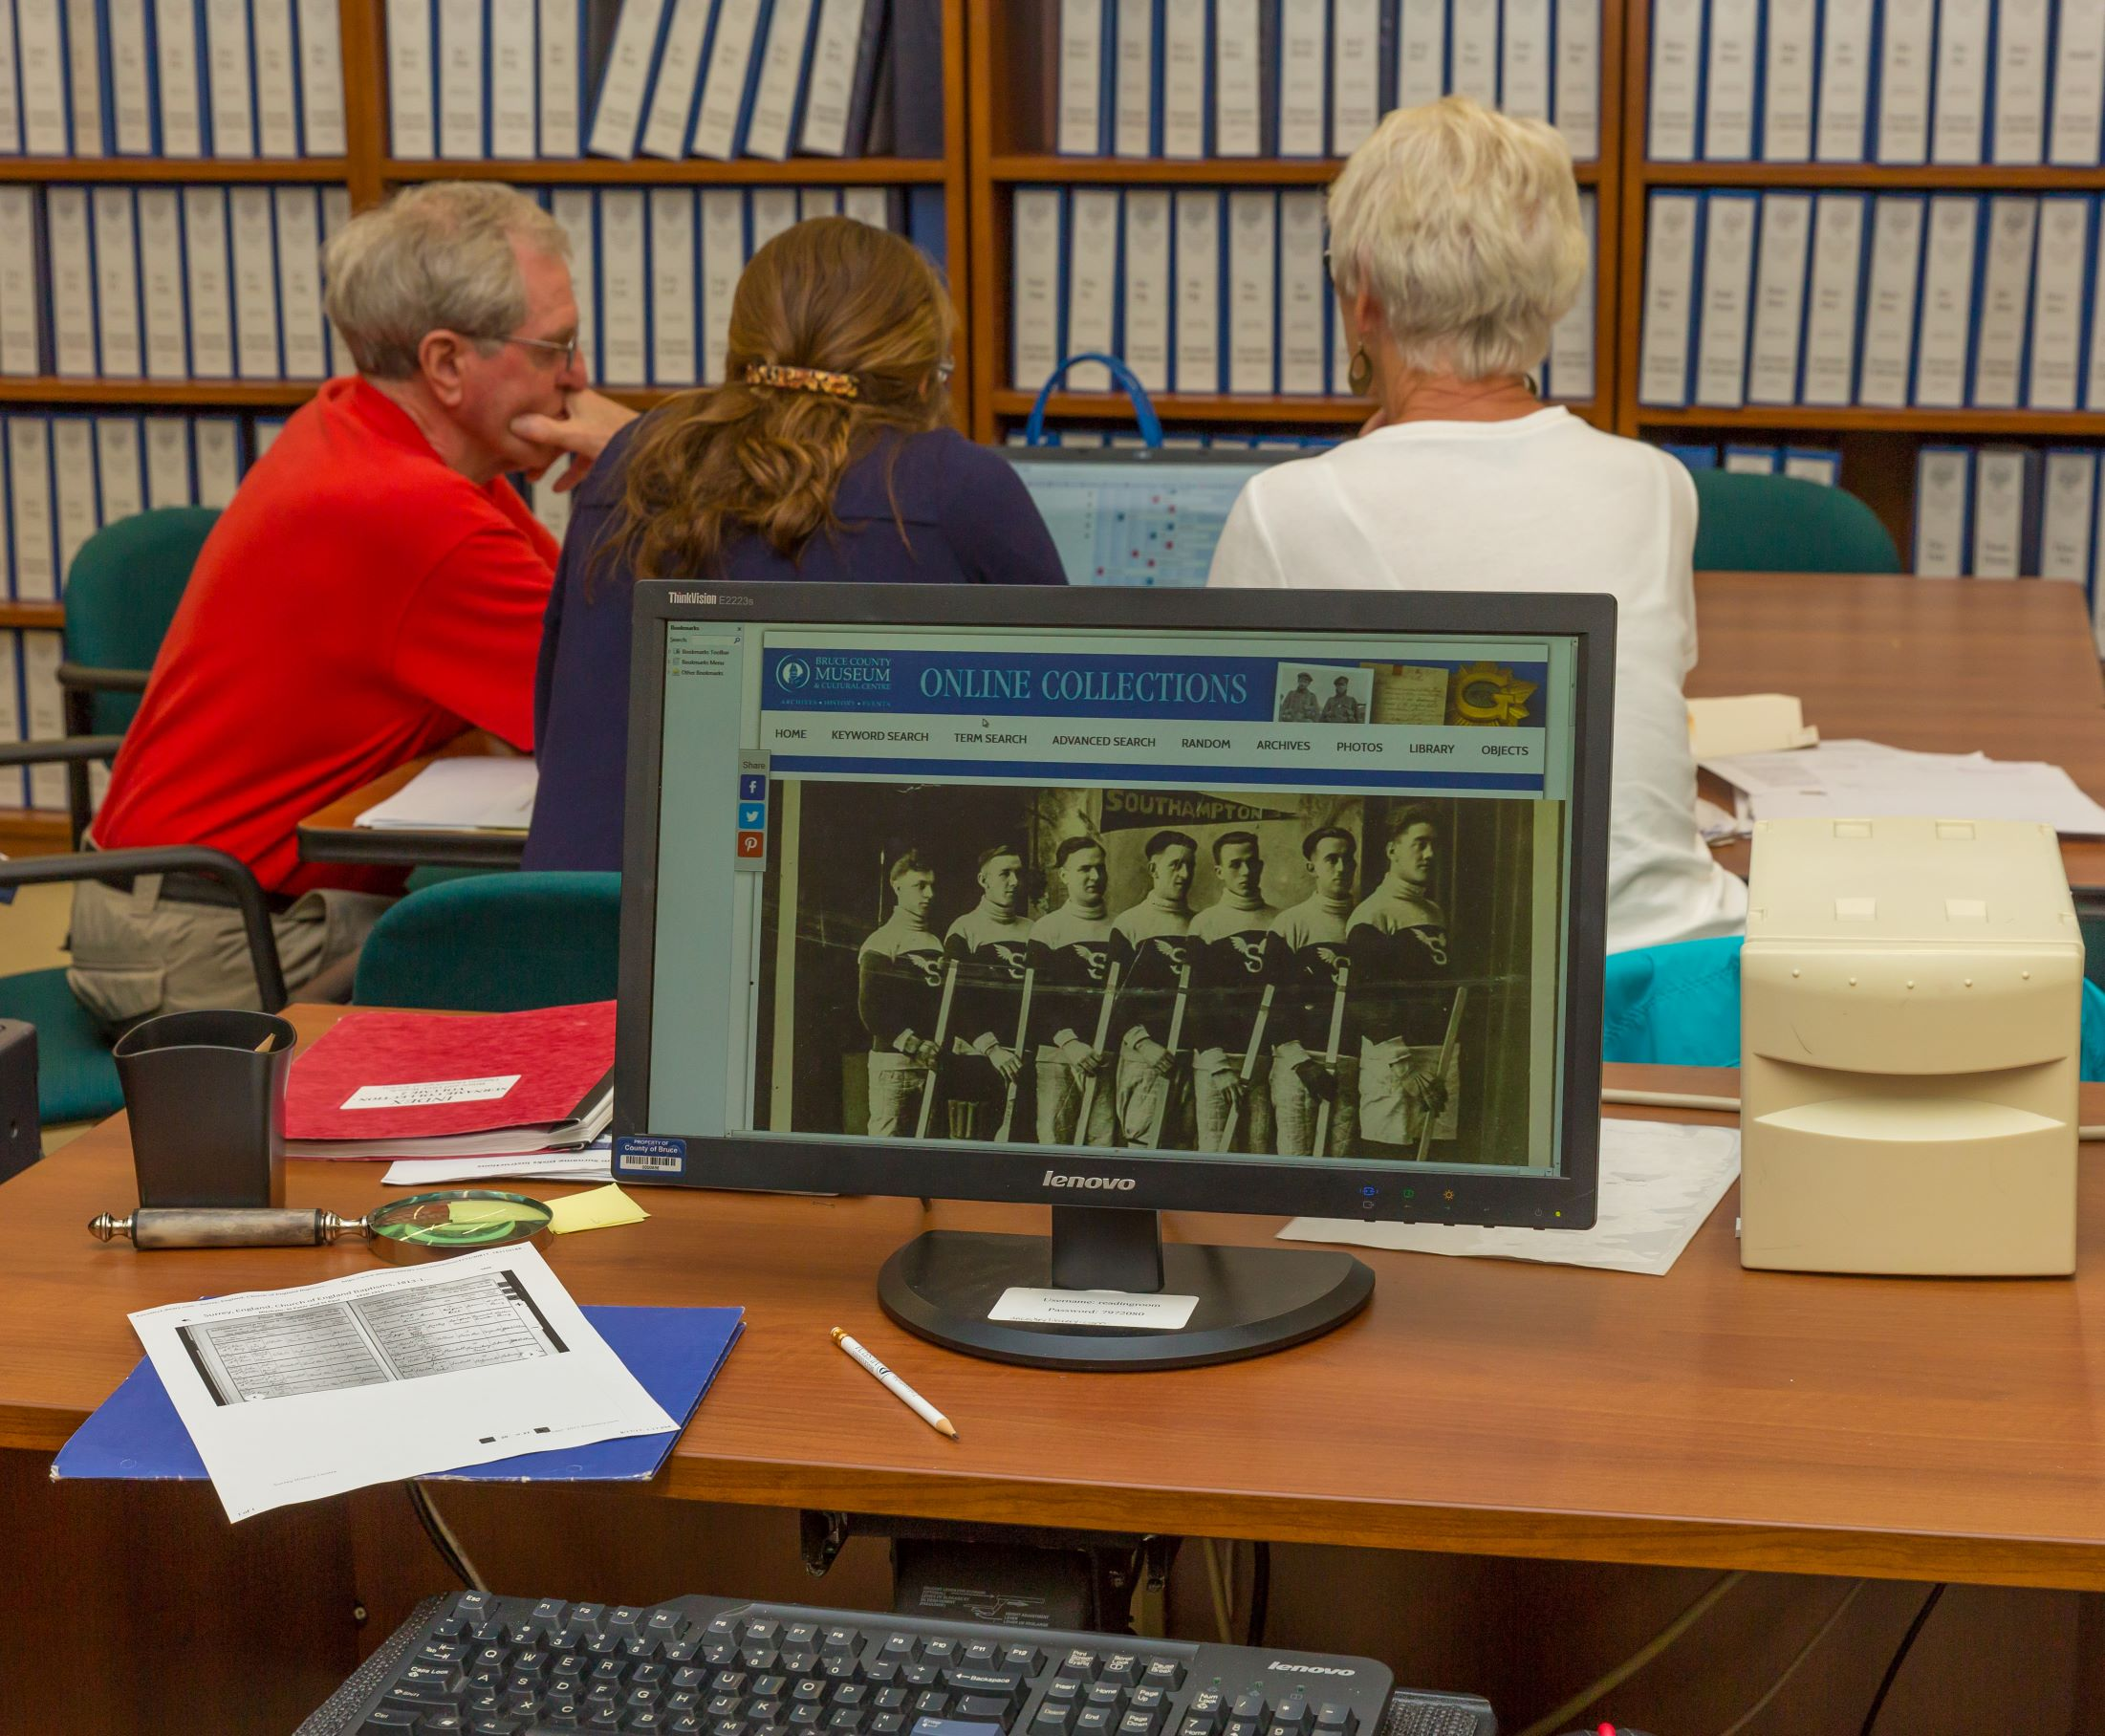 Photo of researchers in the Research Room